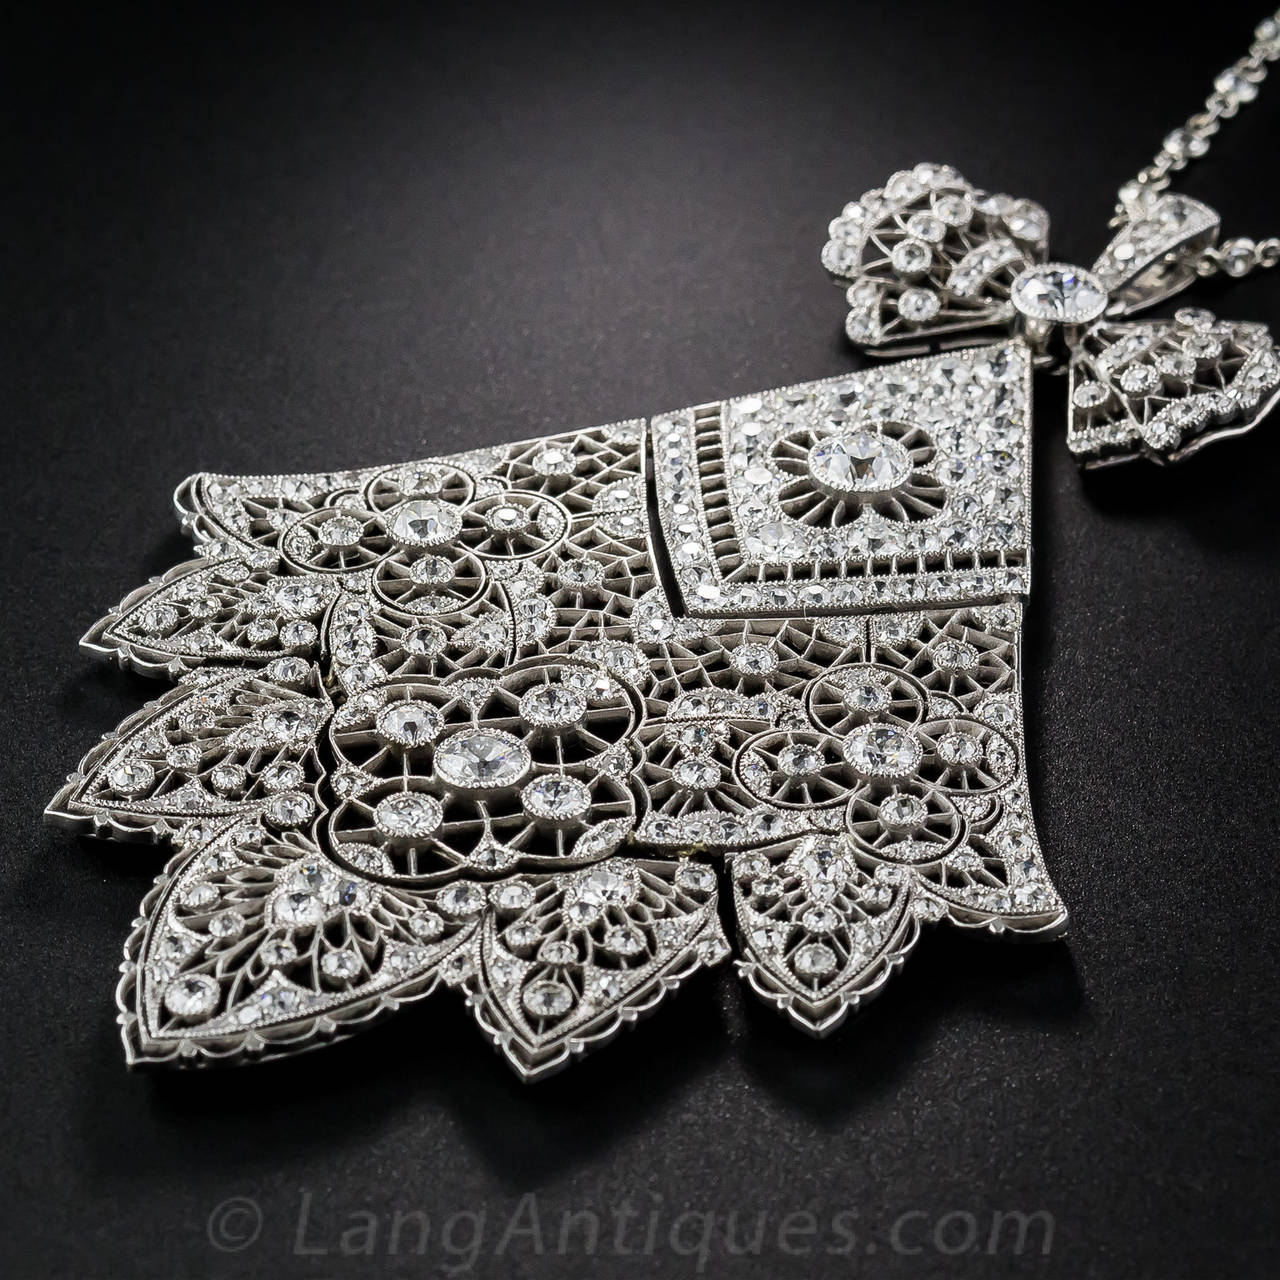 Antique French Belle Epoque 6.75 Carat Diamond Necklace In Excellent Condition For Sale In San Francisco, CA